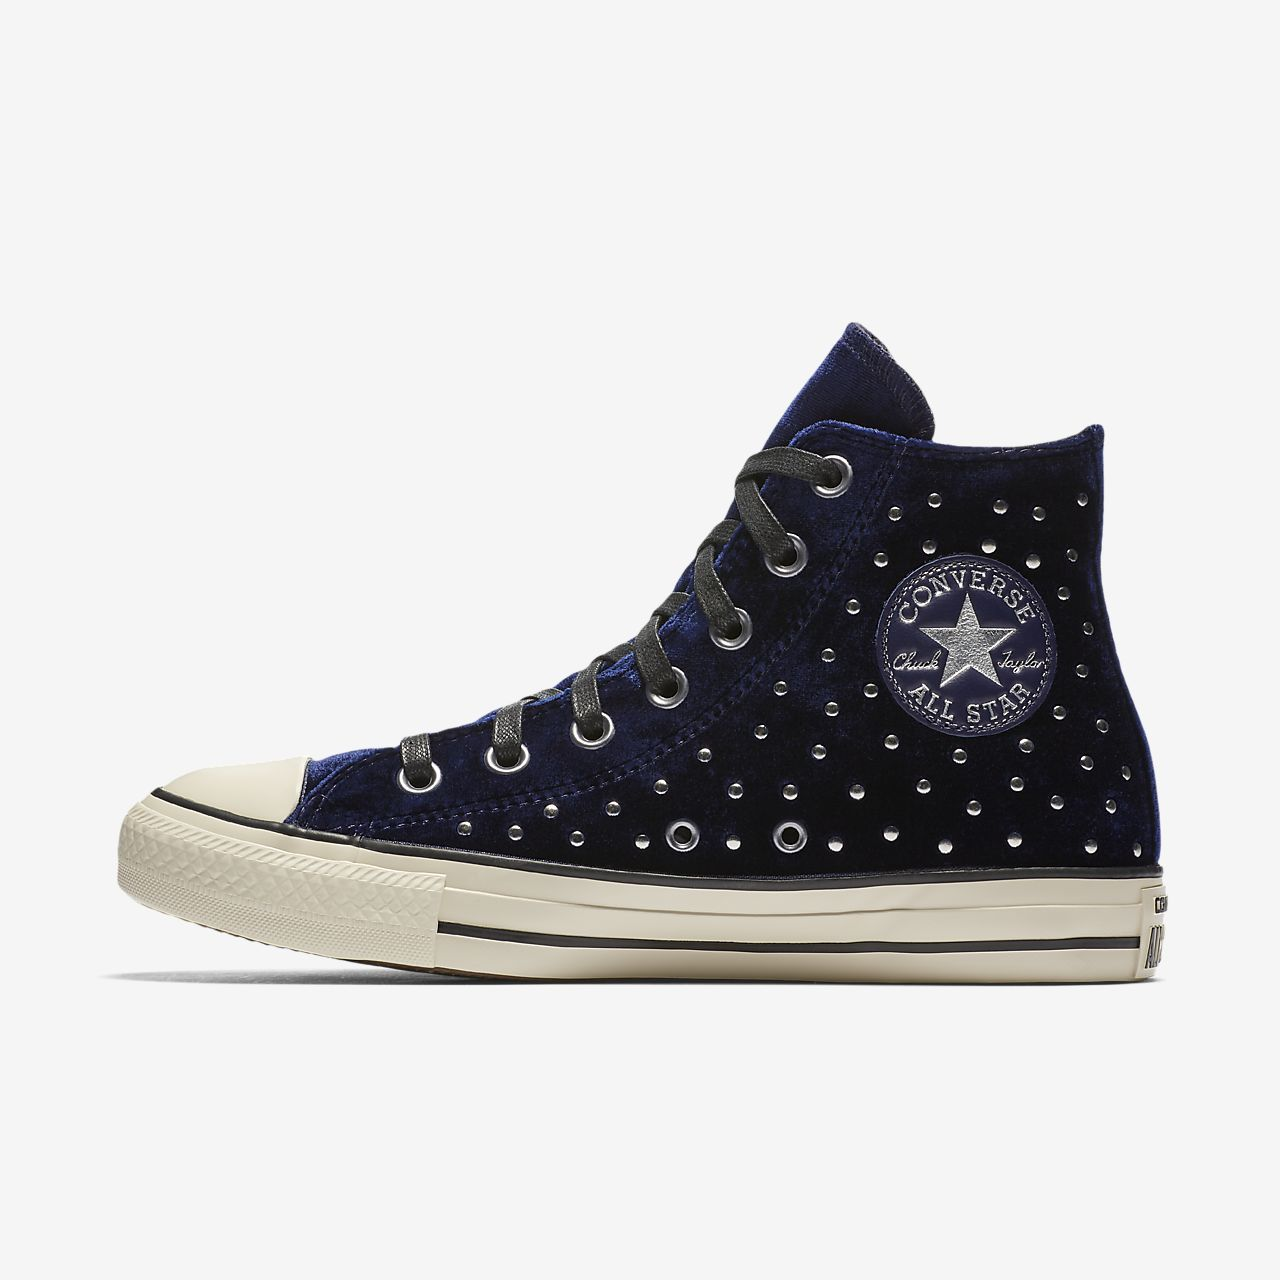 CT AS MID LUX VELVET STUDS - FOOTWEAR - High-tops & sneakers Converse SJ9gEi